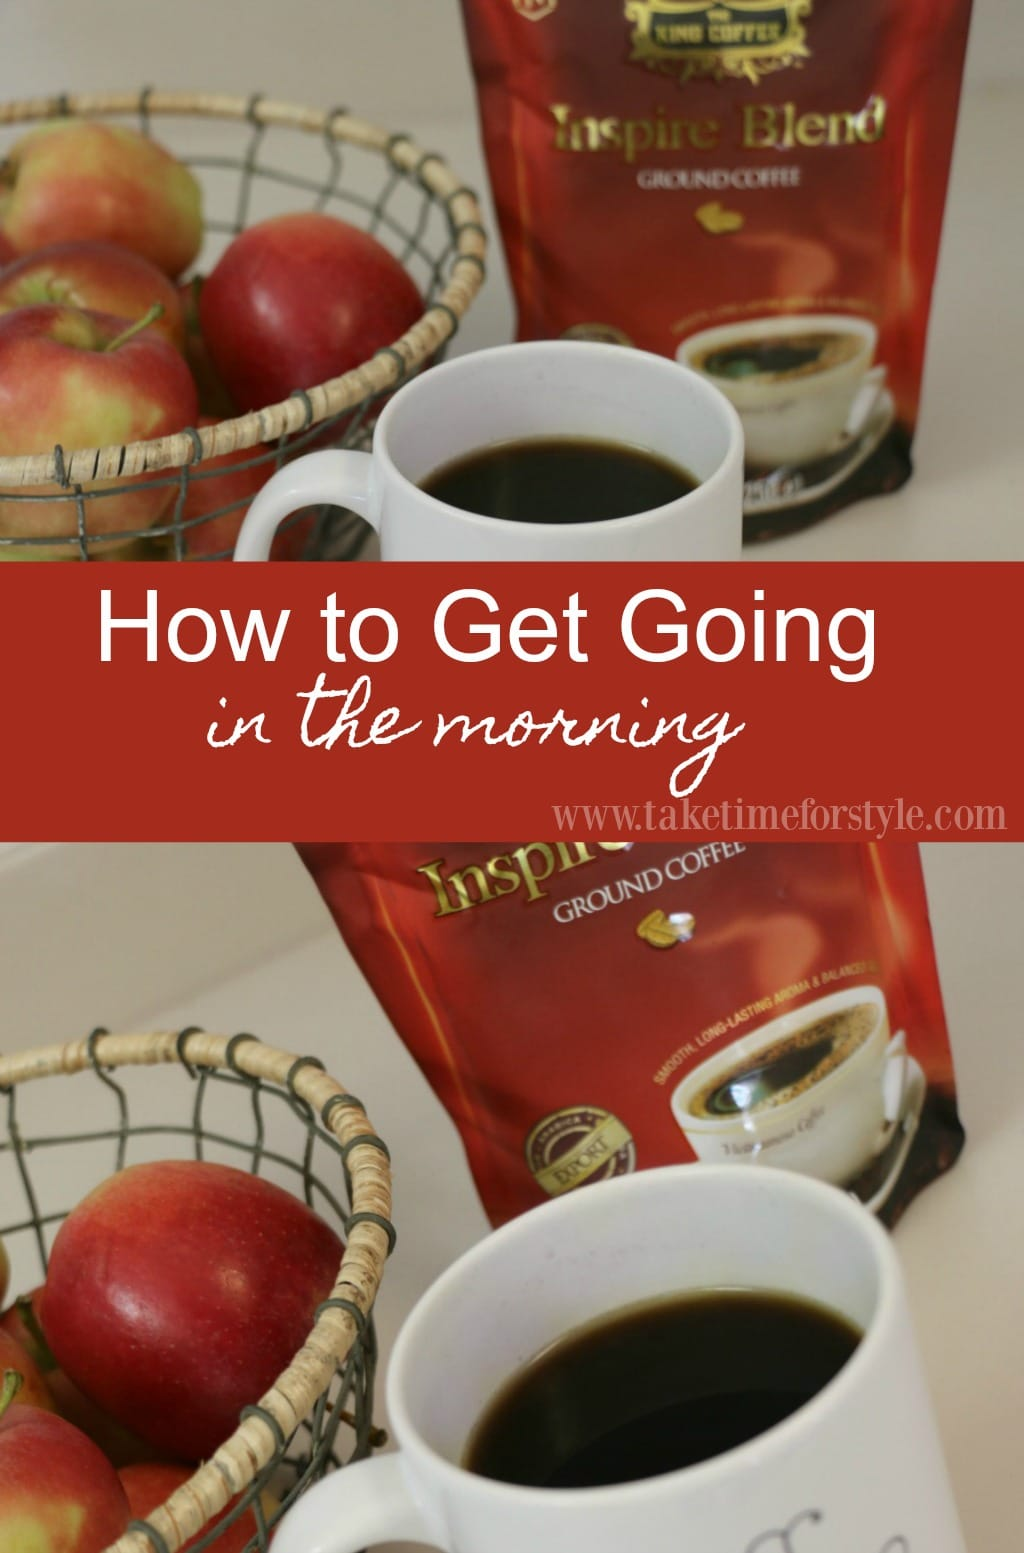 tips for how to get going in the morning